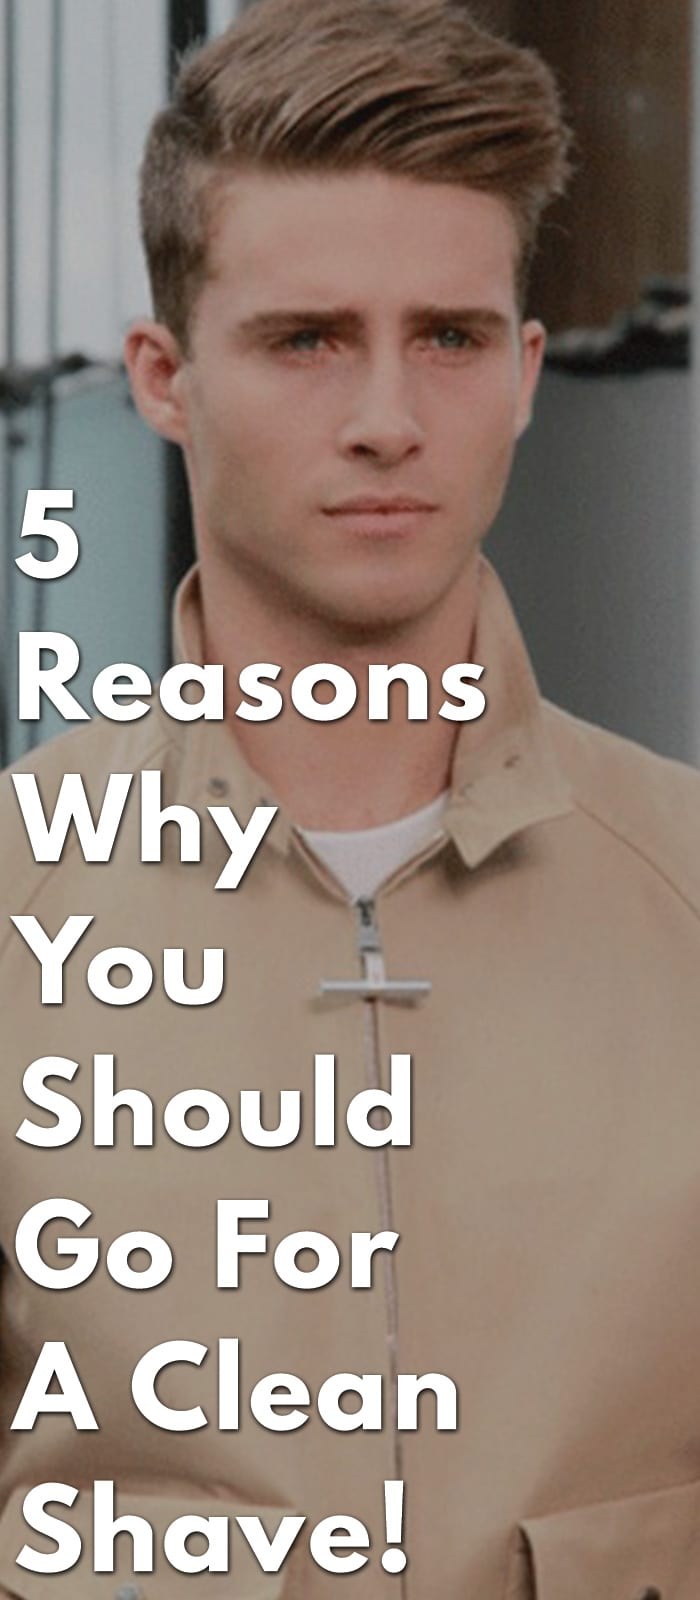 5-Reasons-Why-You-Should-Go-For-A-Clean-Shave!